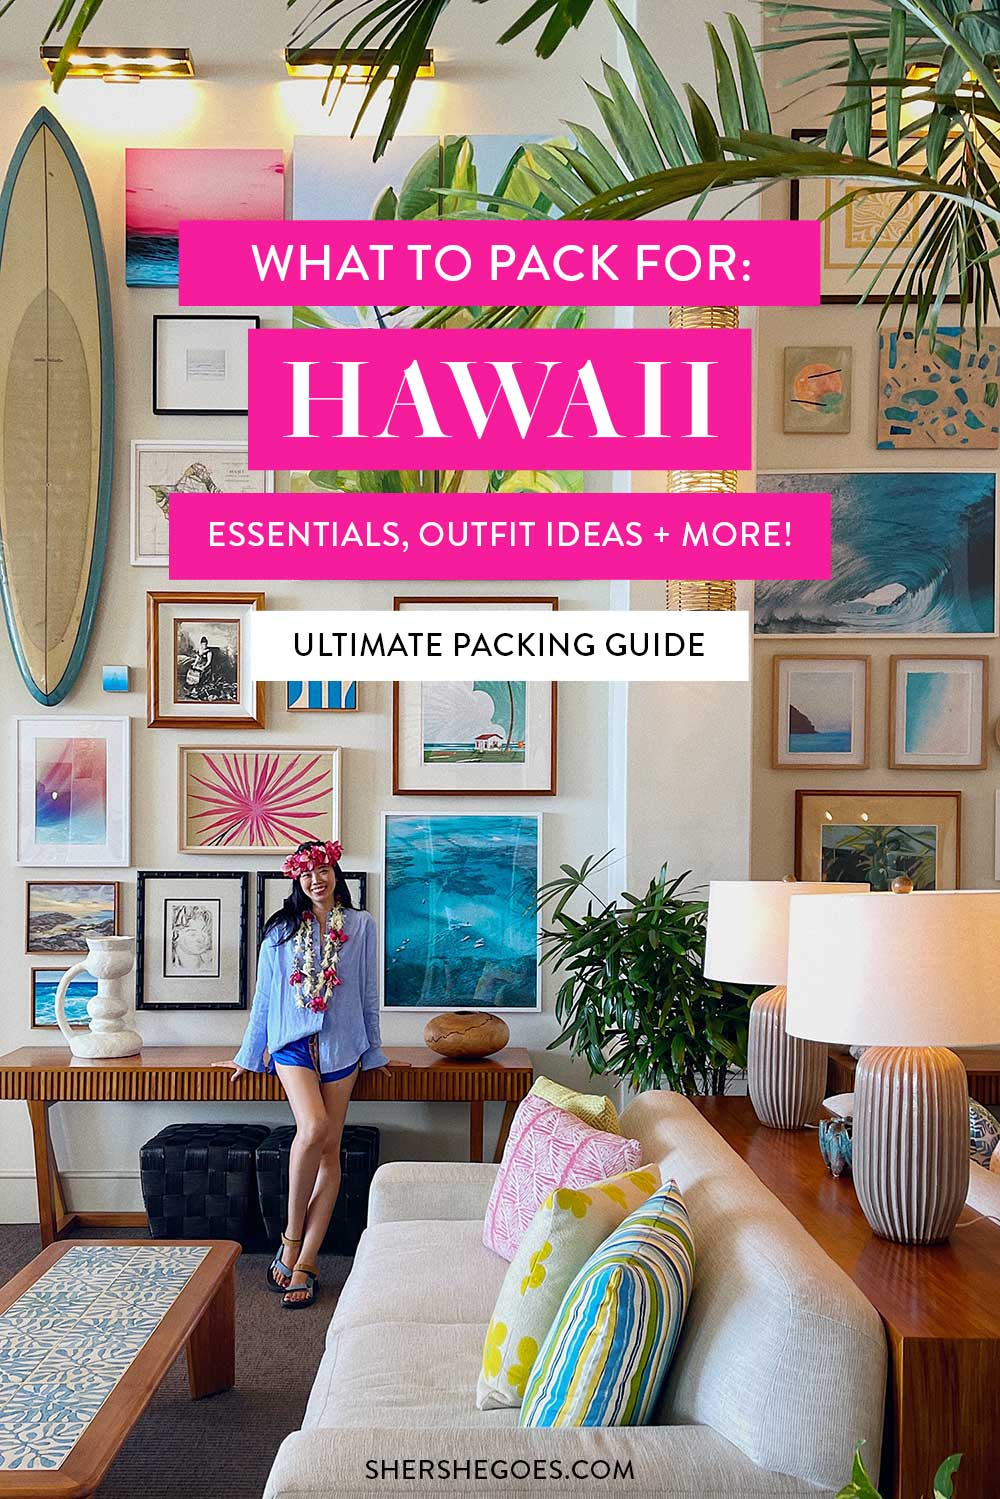 hawaii-outfit-ideas